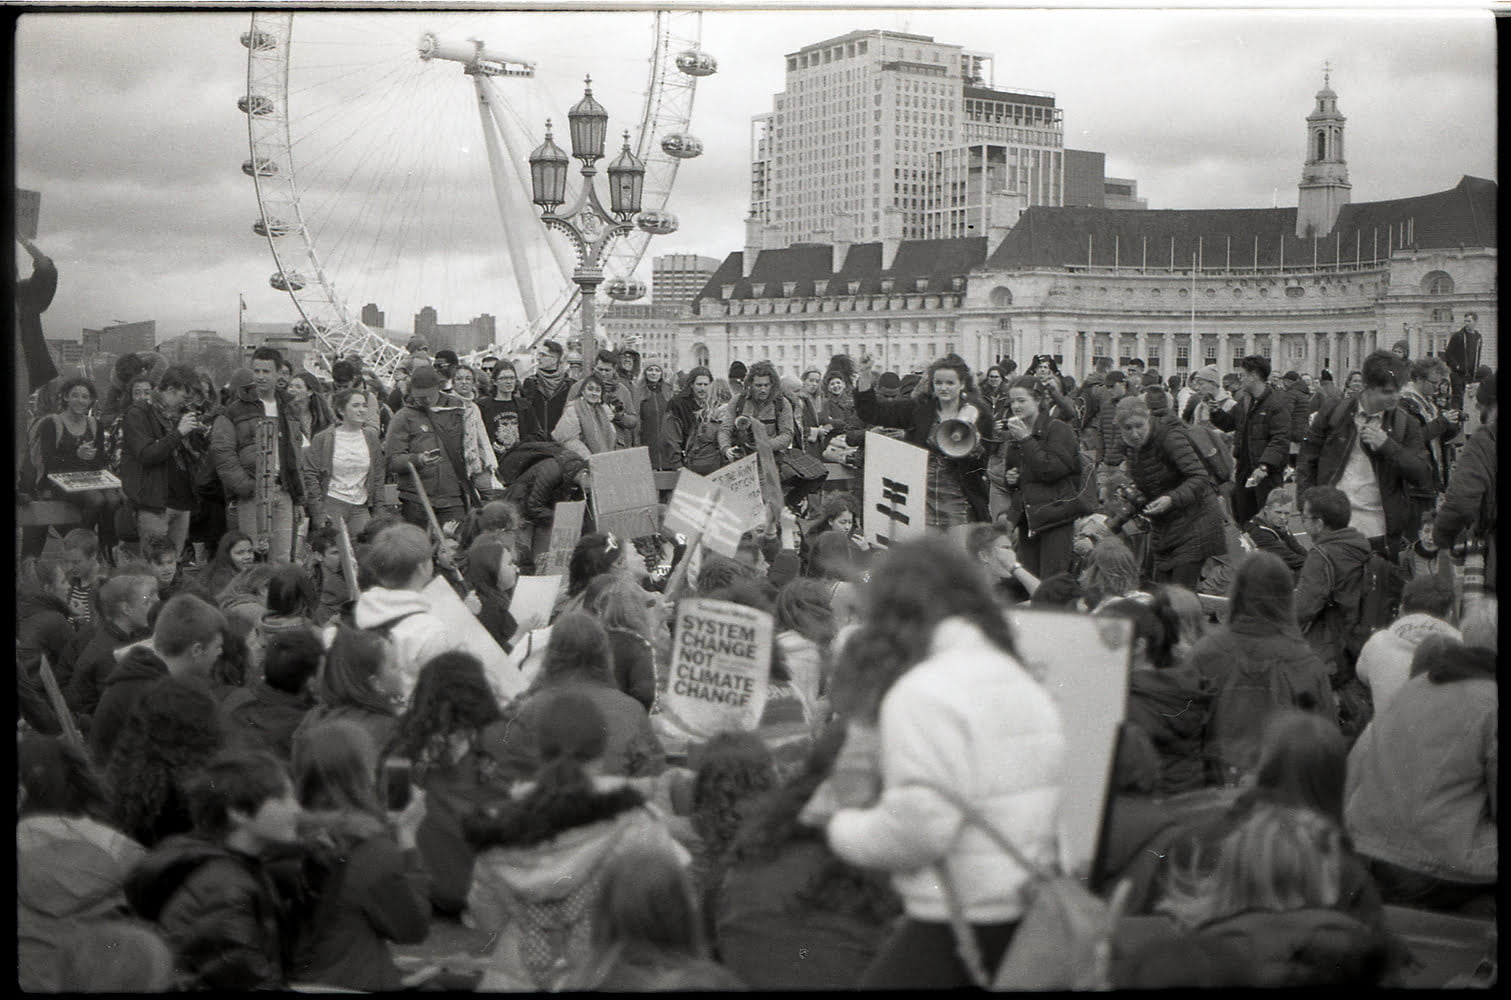 An image of a crowd of protestors in london